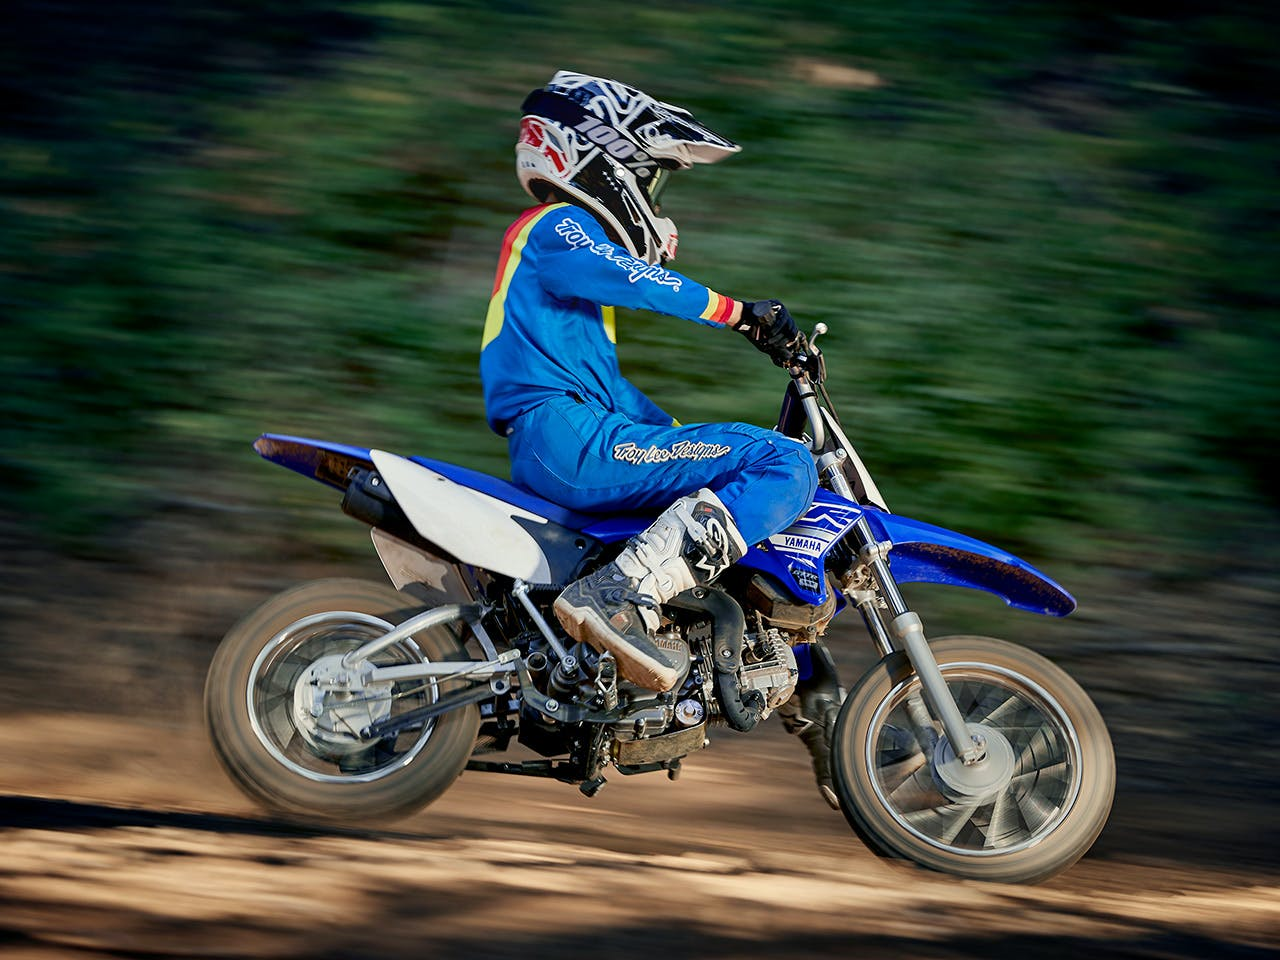 Yamaha TT-R110E in Team Yamaha Blue and White colour, being ridden off-track